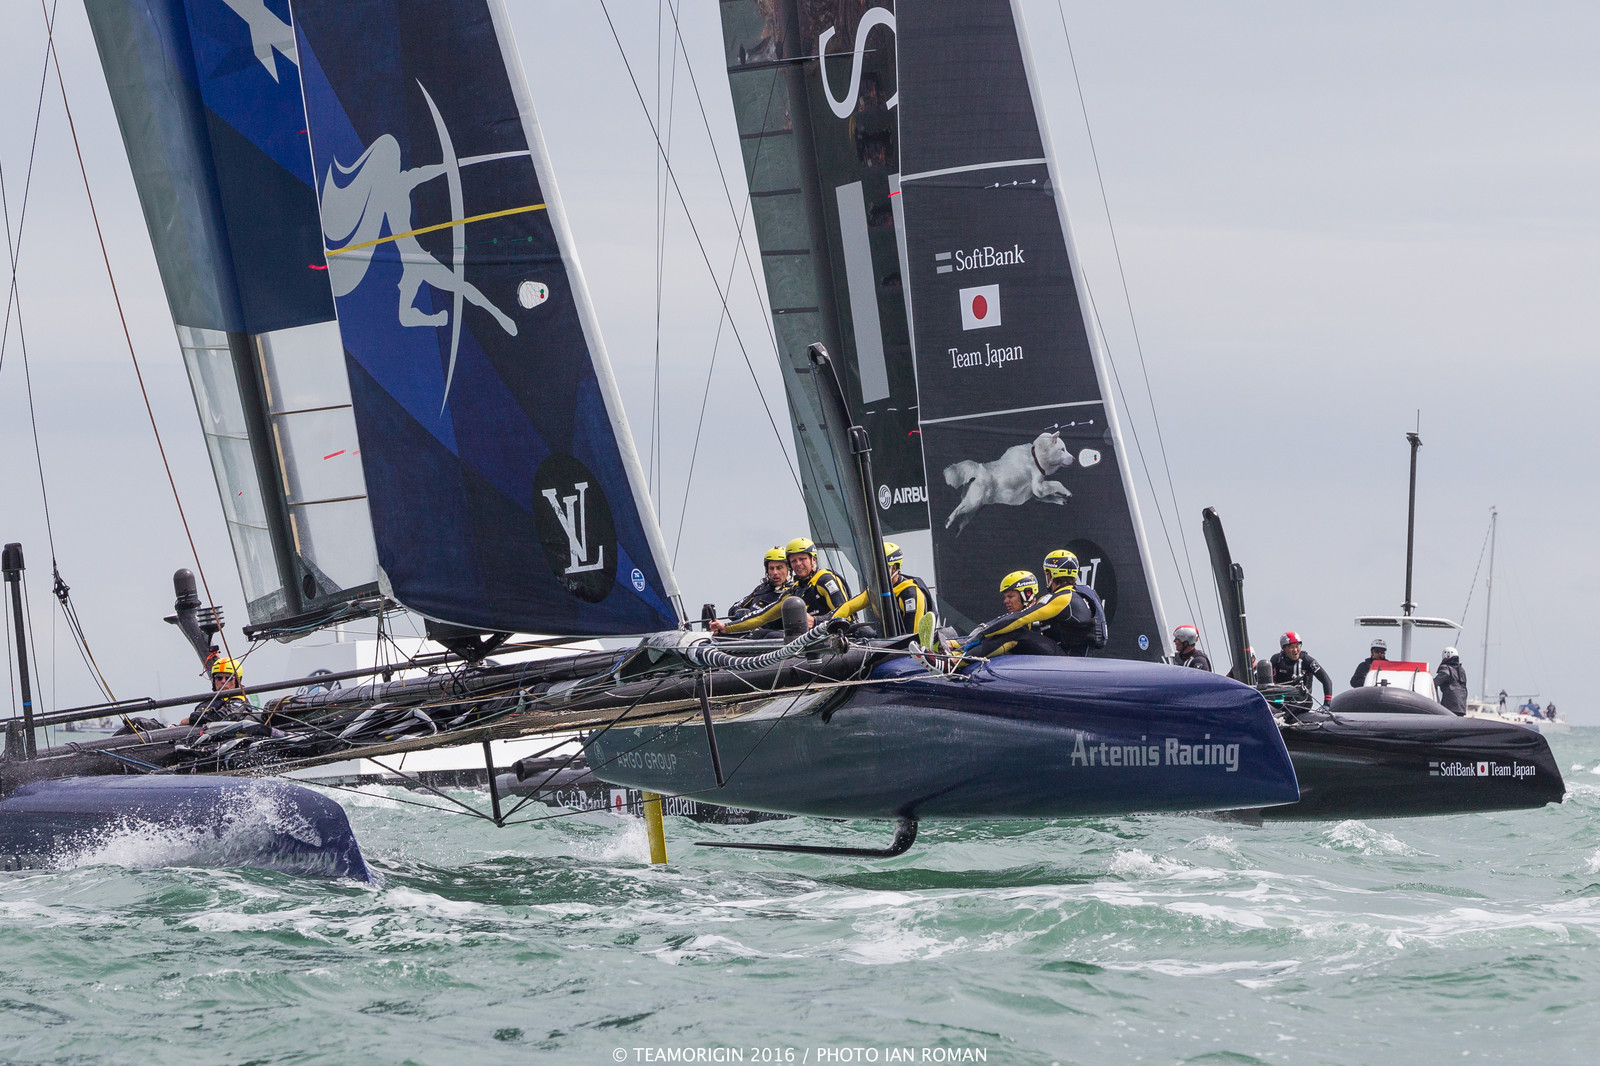 23/07/16 - Portsmouth (UK) - 35th America's Cup 2017 - Louis Vuitton America's Cup World Series Portsmouth - Racng Day 2